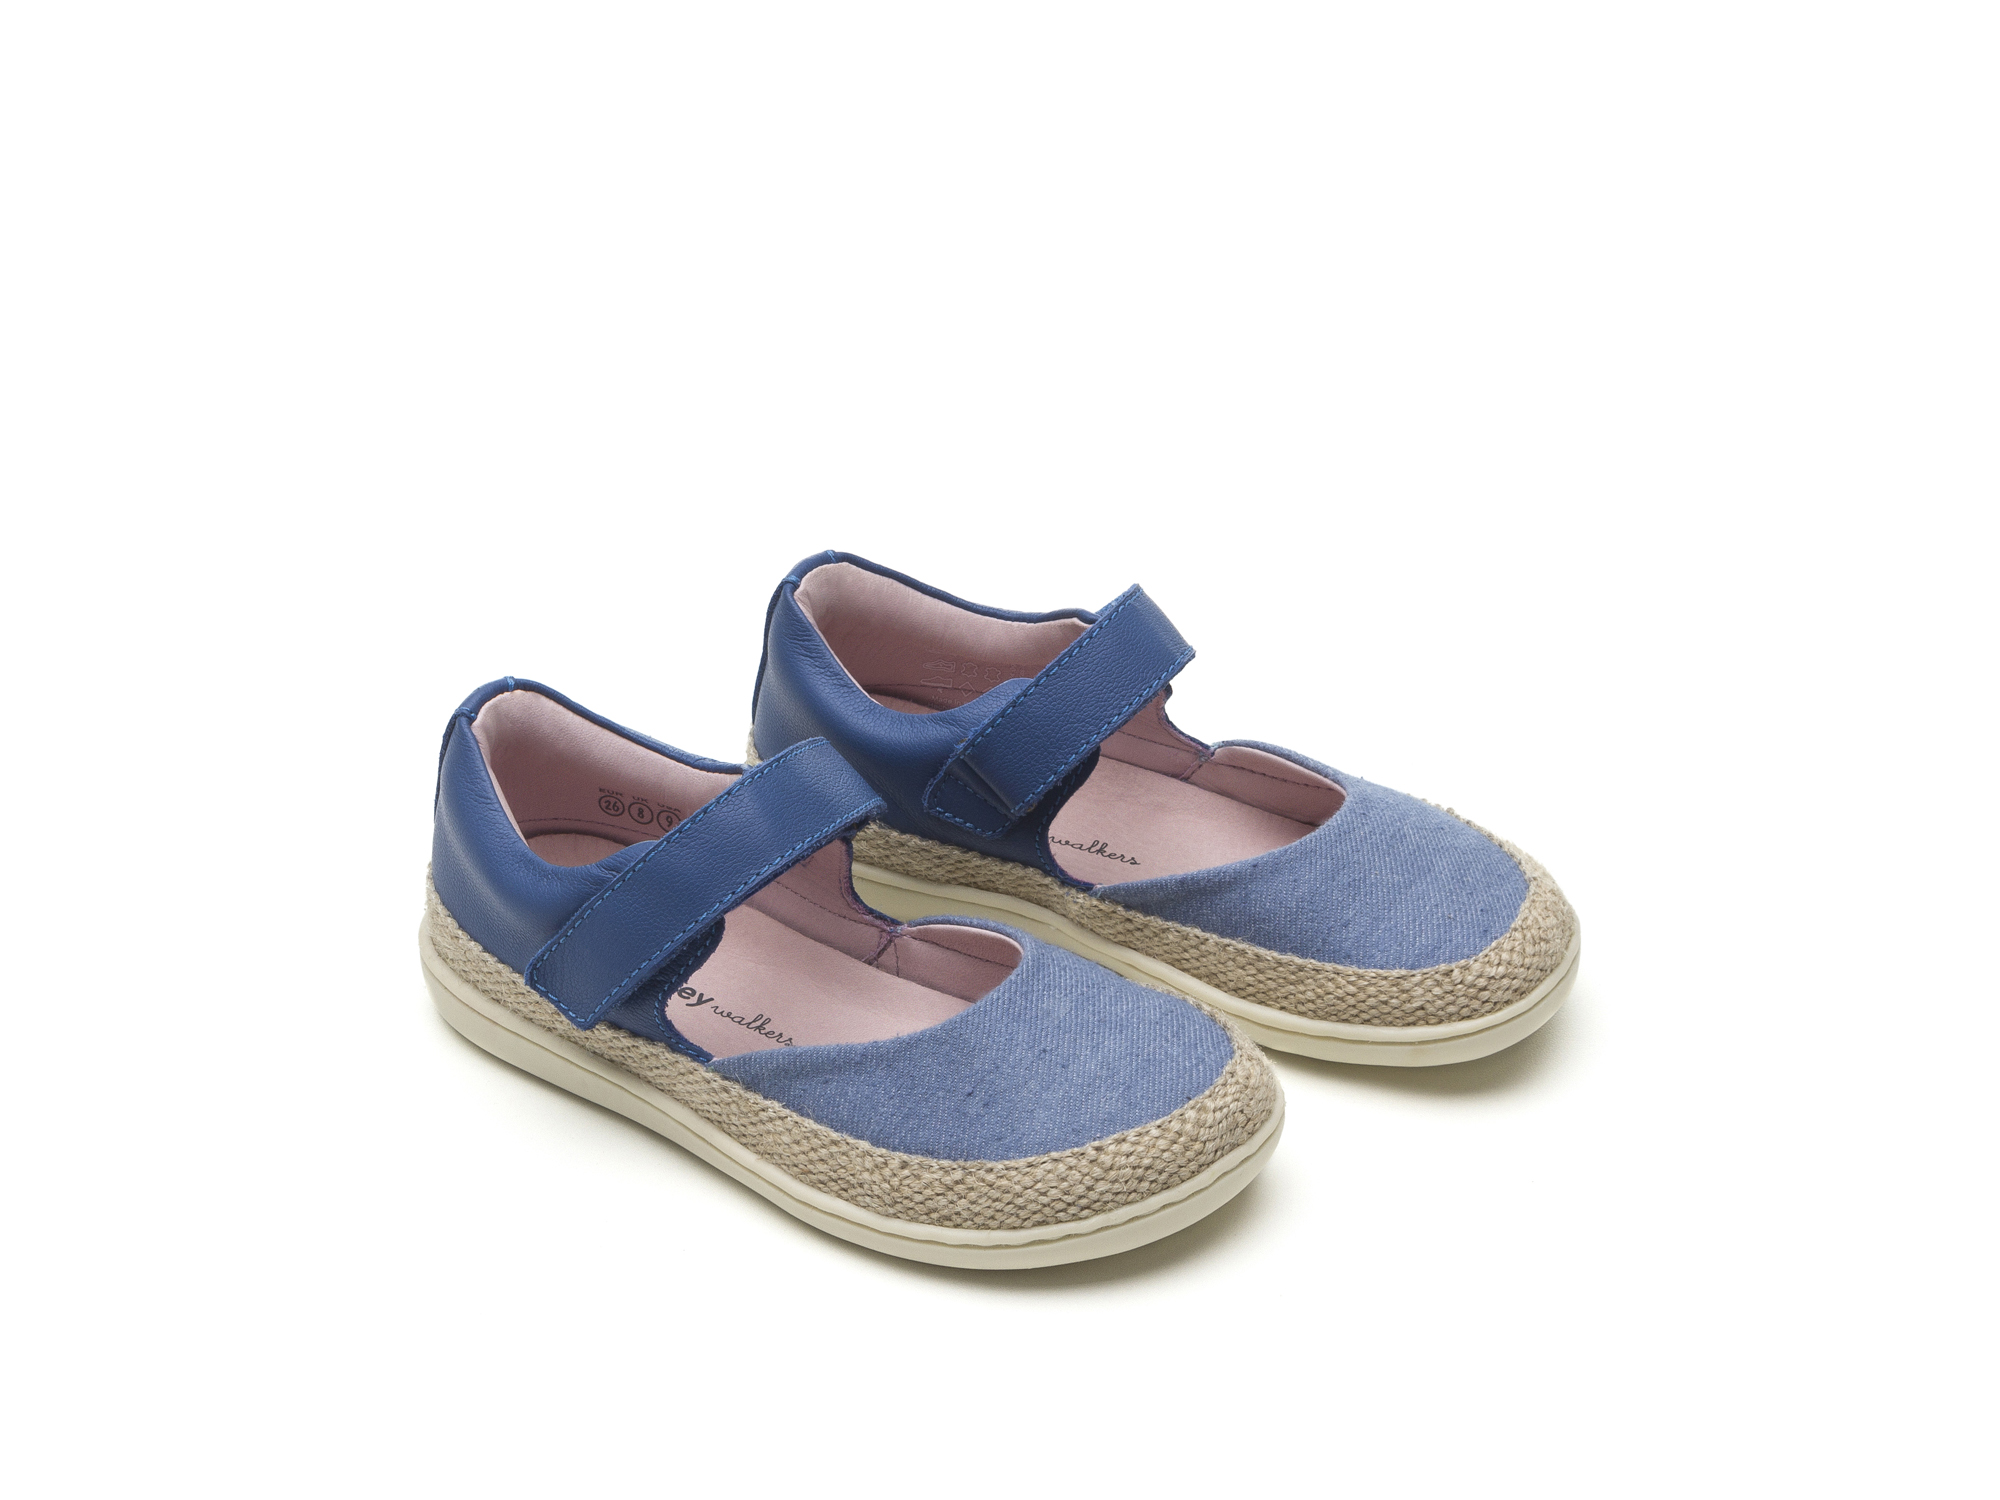 Boneca Little Seaside Light Denim Canvas/ Blue Tang Toddler 2 à 4 anos - 0